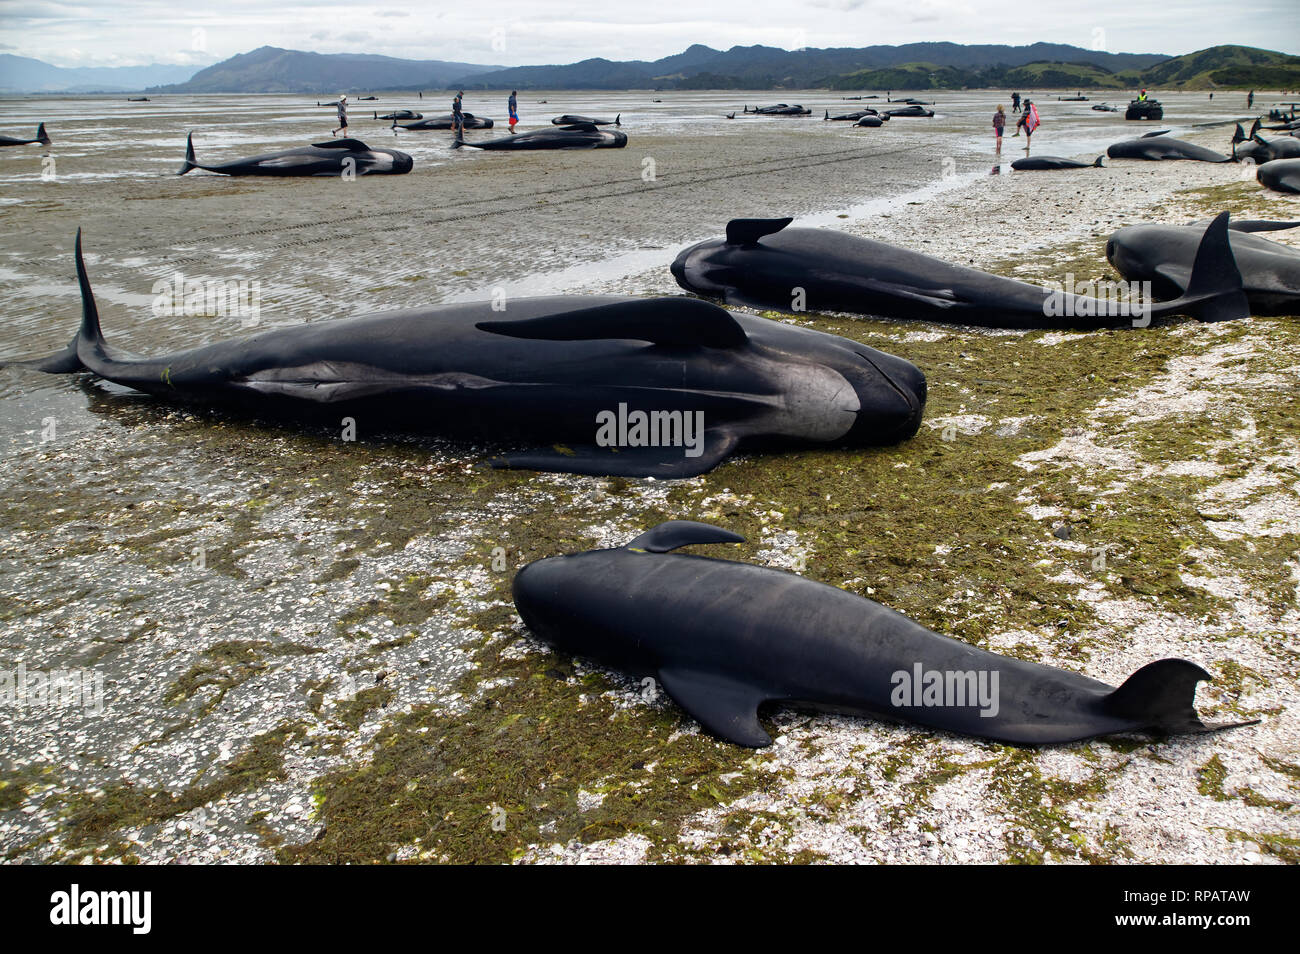 Dead pilot whales during a whale stranding on Farewell Spit in New Zealand's South Island - Stock Image